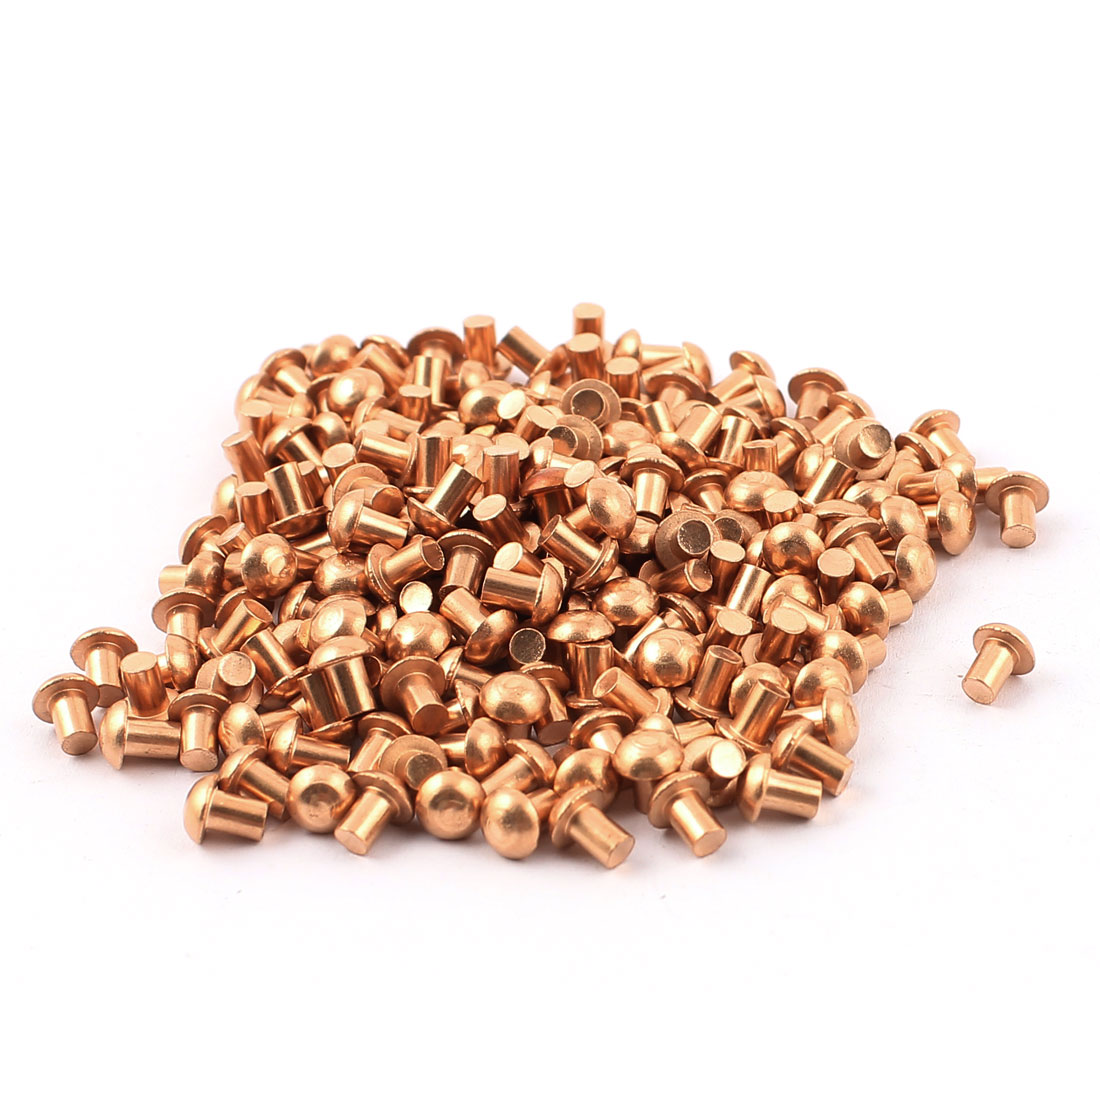 "200 Pcs 1/8"" x 5/32"" Round Head Copper Solid Rivets Fasteners"